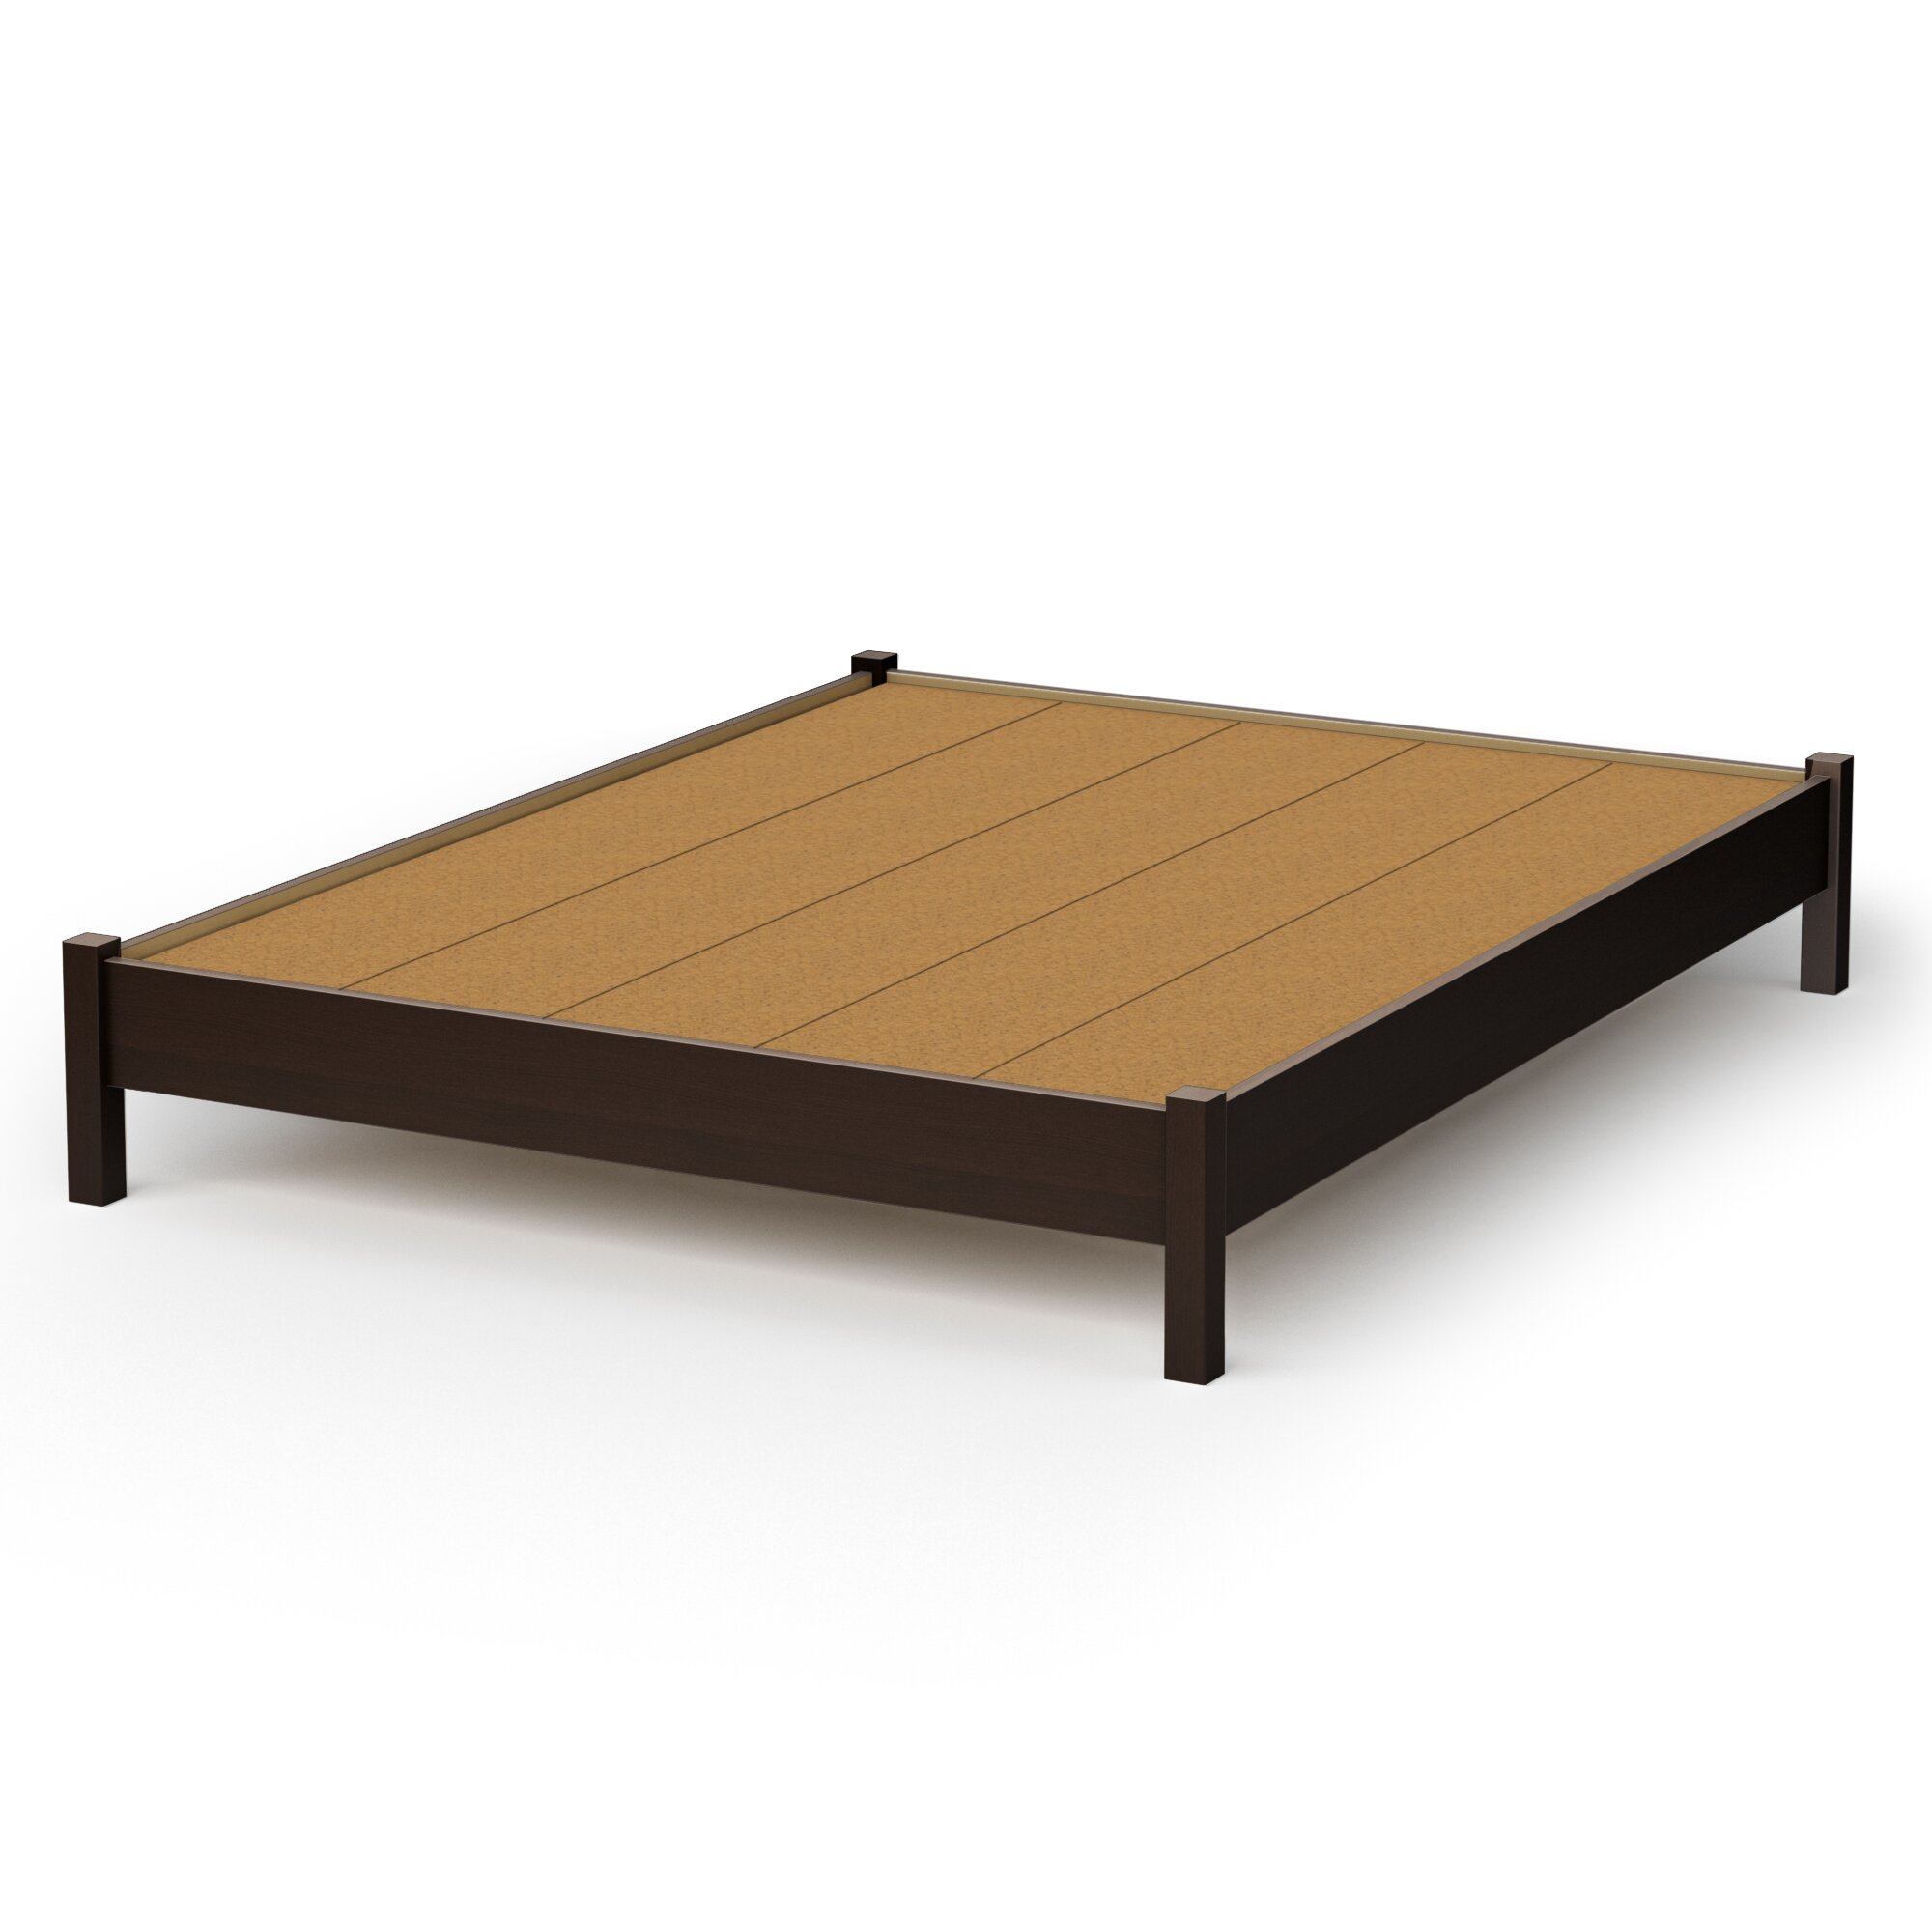 South shore step one platform bed reviews wayfair for Pedestal bed